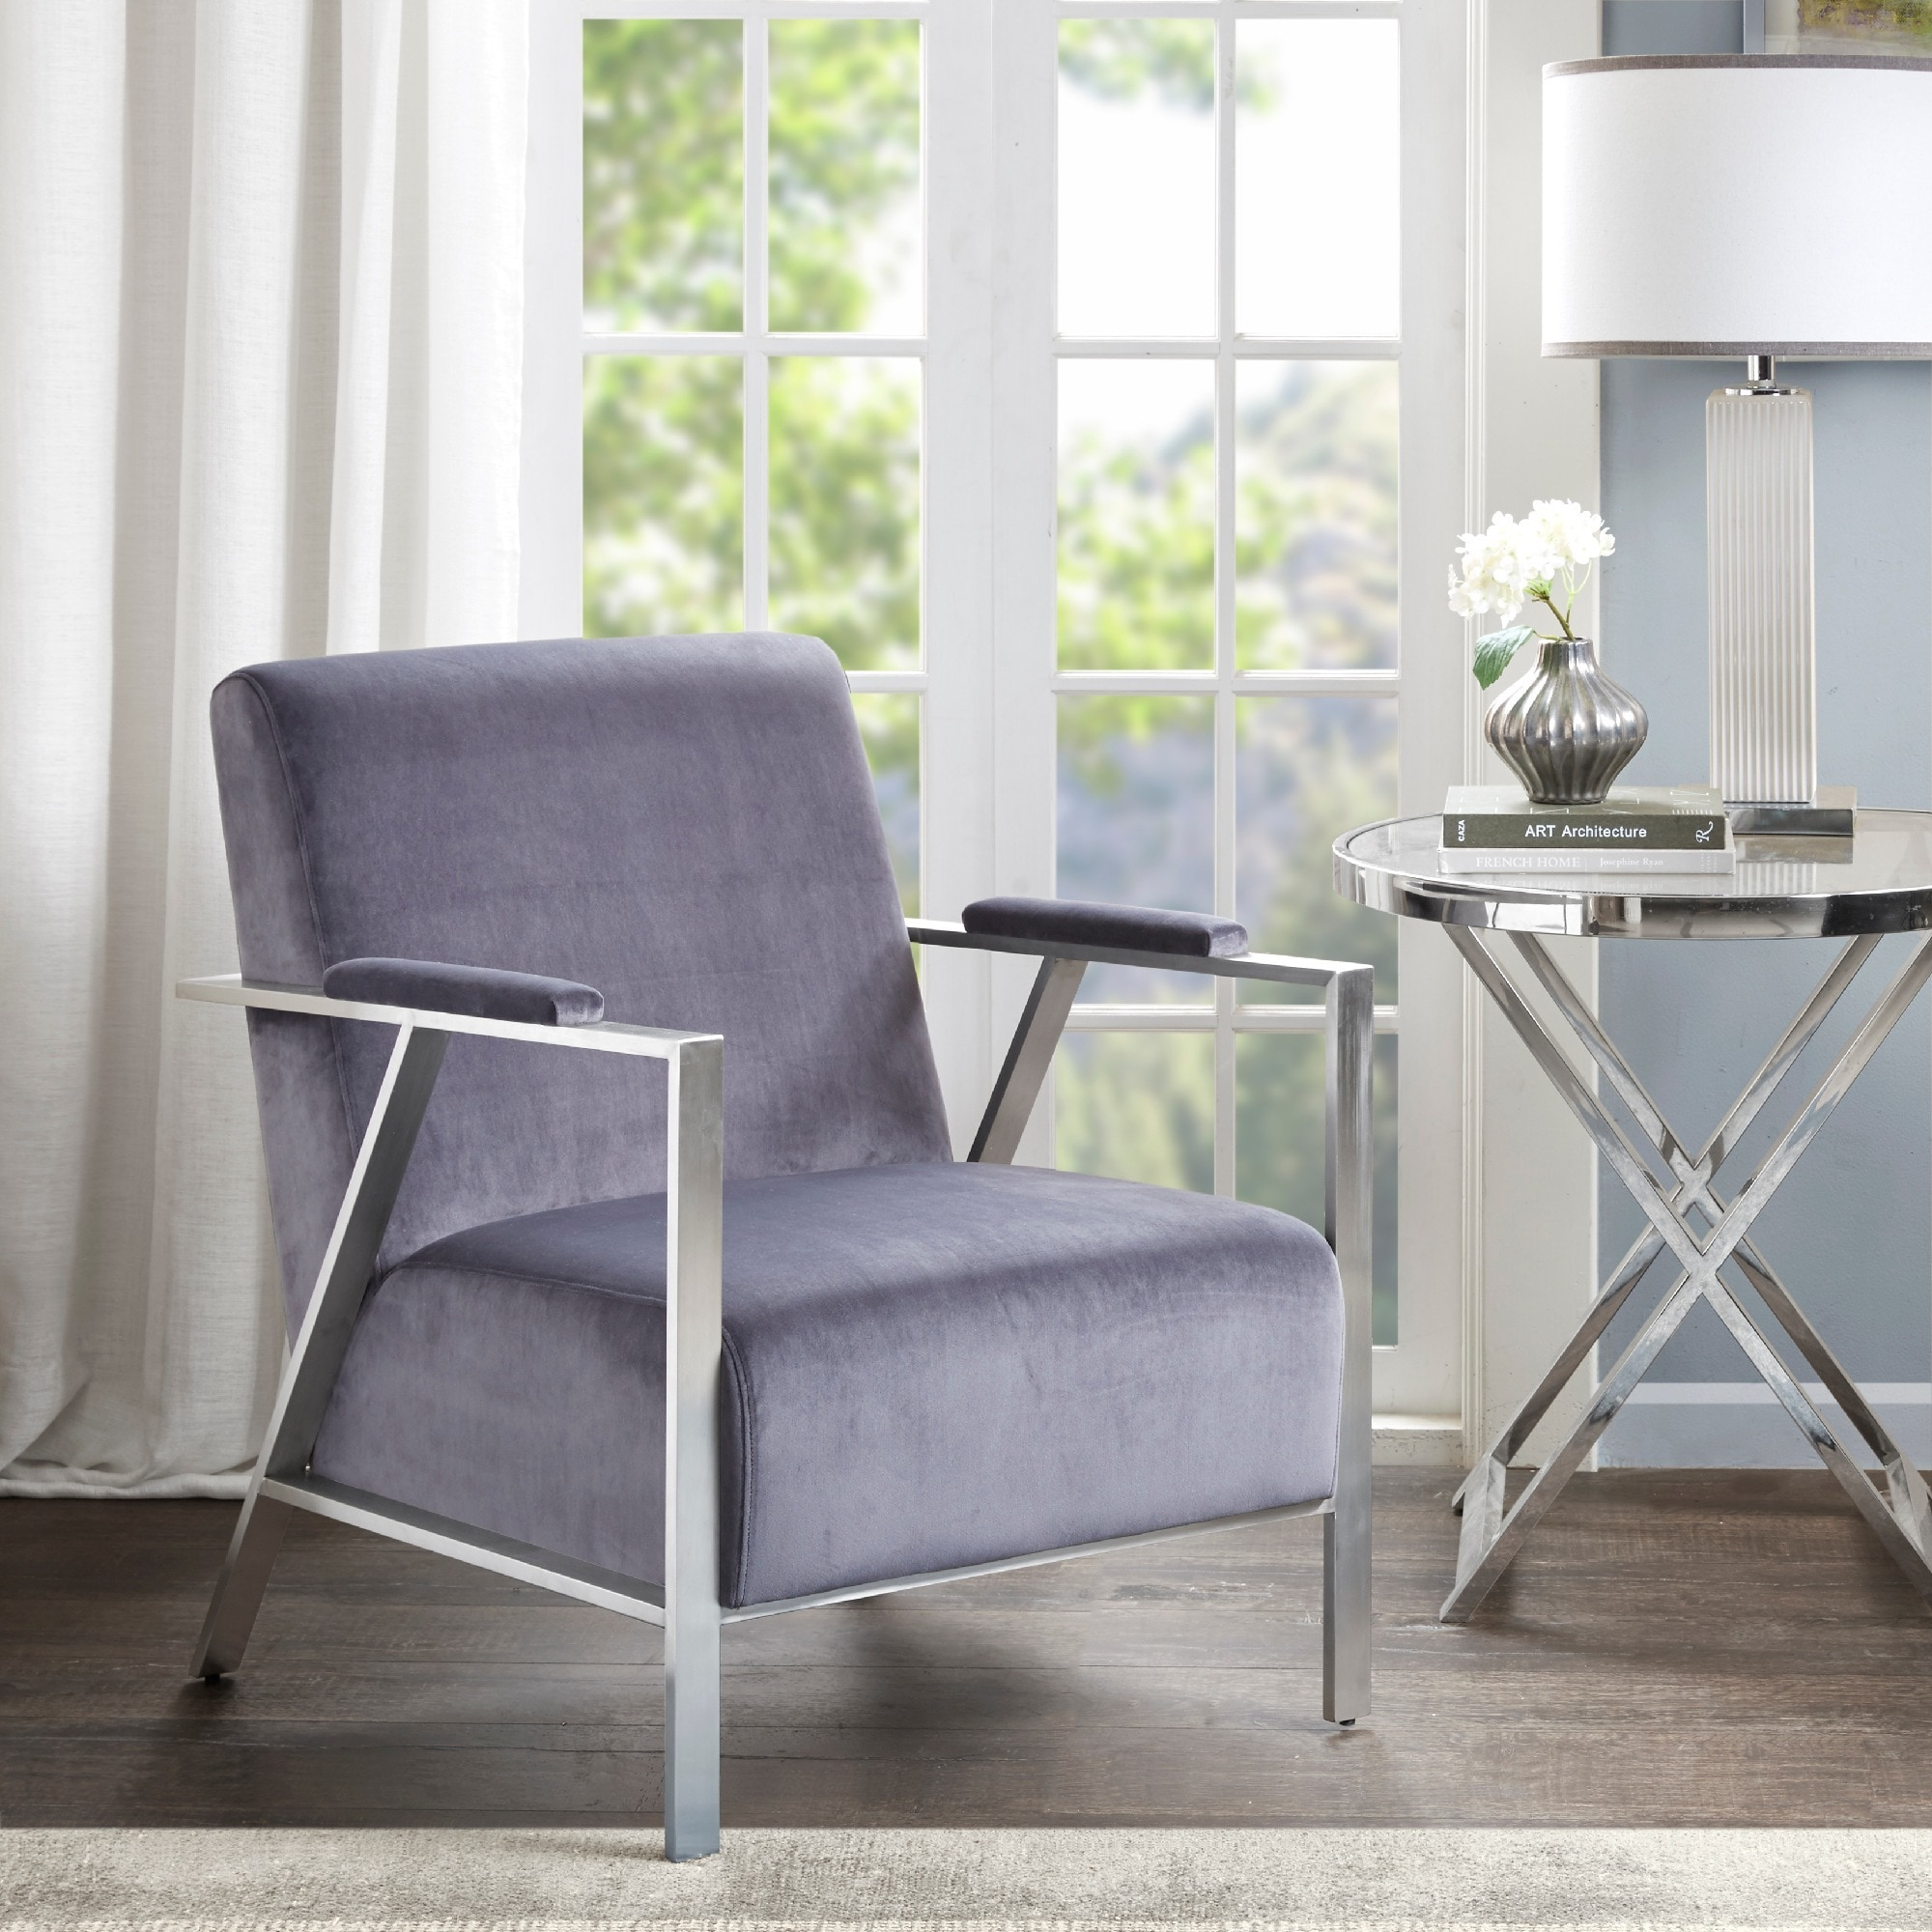 Shop madison park miguel grey silver accent chair free shipping today overstock com 15925448